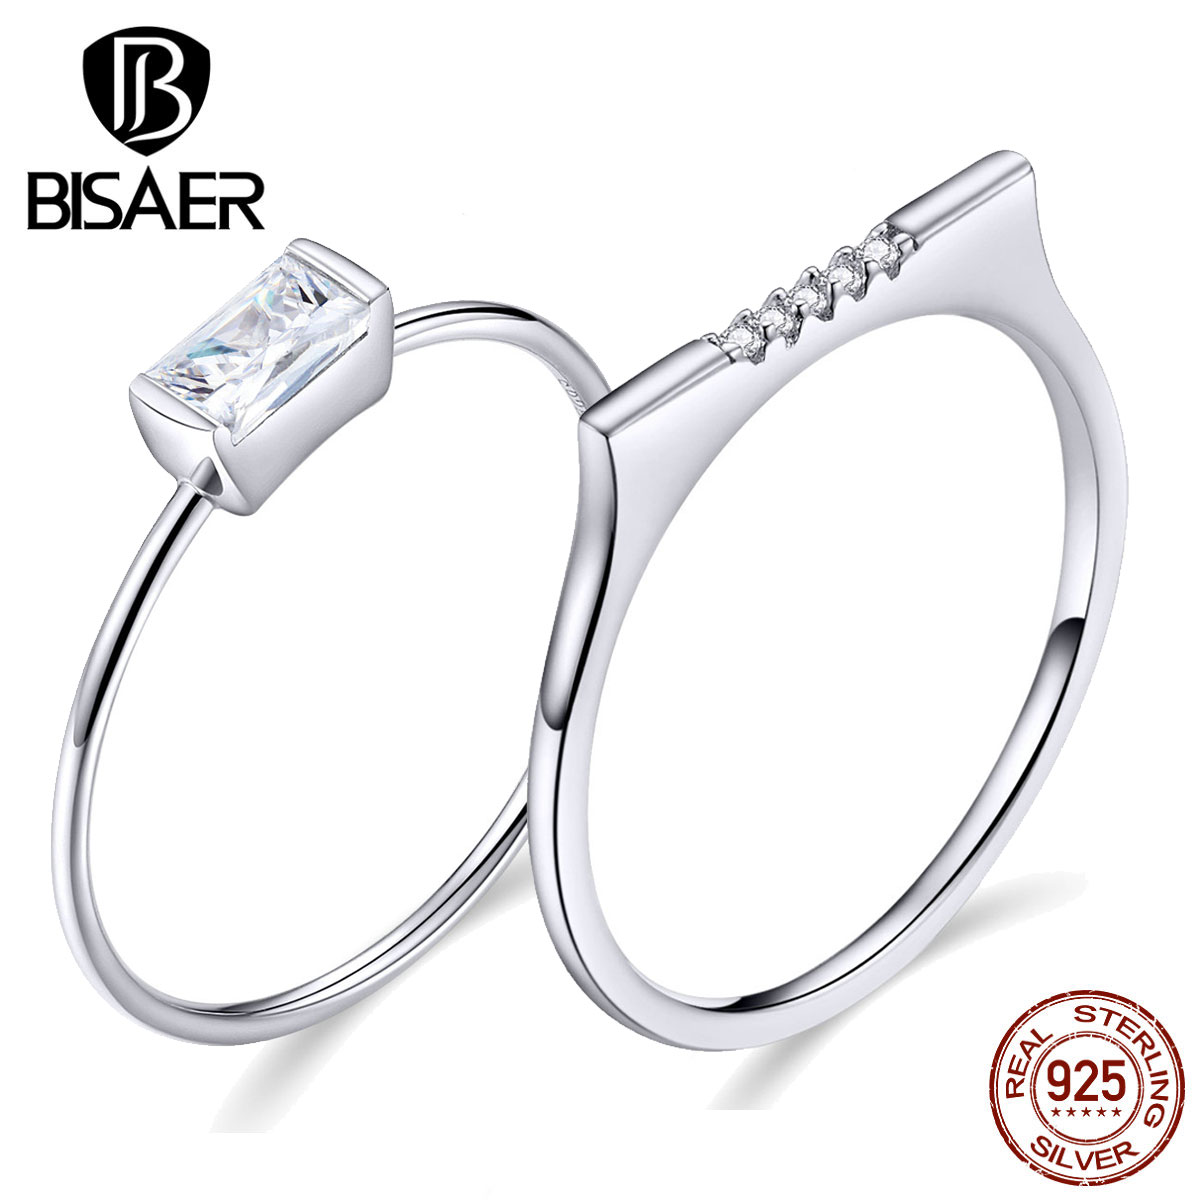 Wedding Rings BISAER 925 Sterling Silver First Love Clear Cubic Zircon Finger Rings For Women Luxury Silver Jewelry ECR564